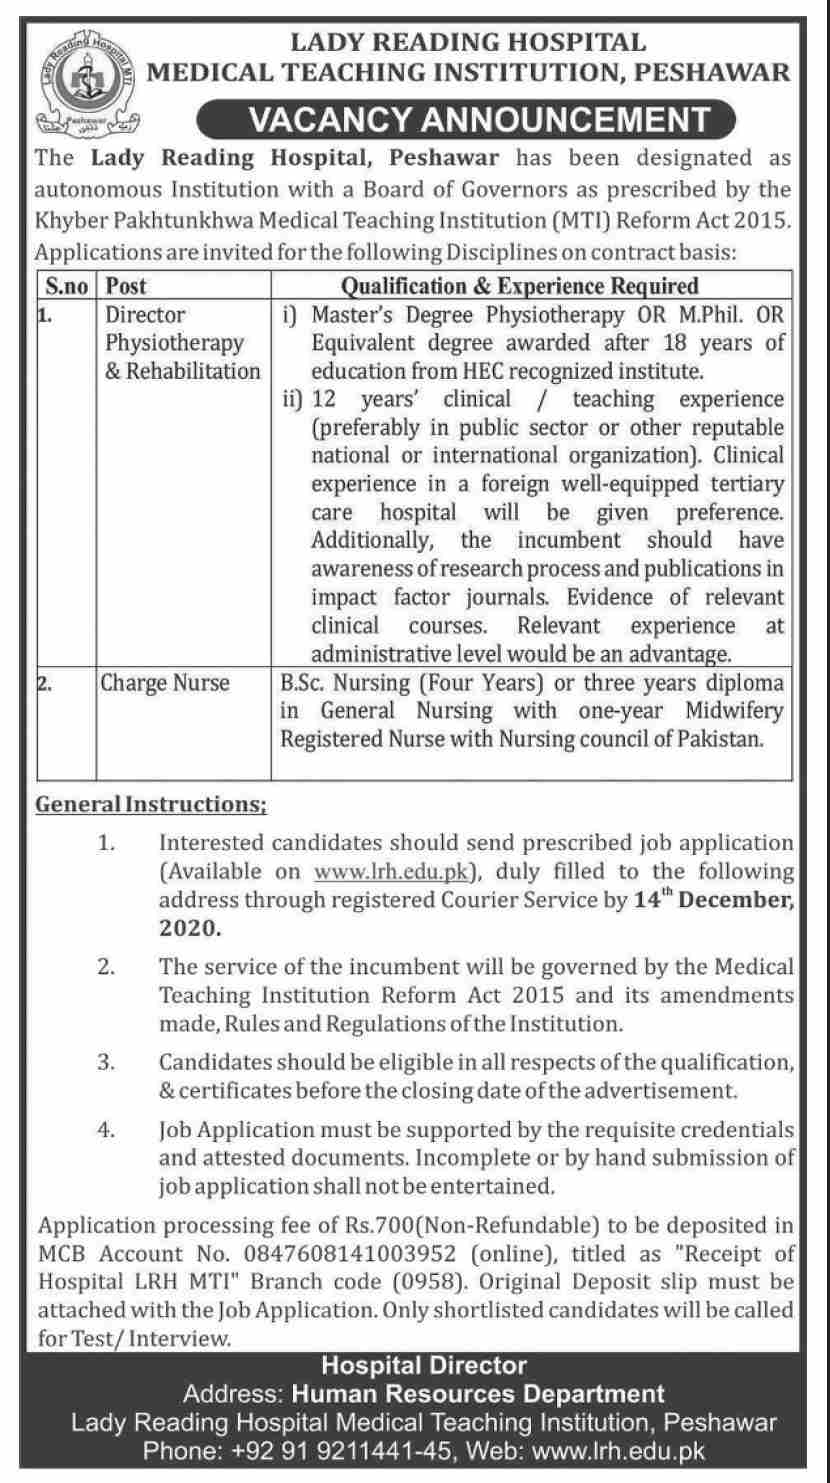 Lady Reading Hospital Medical Teaching Institution Jobs November 2020